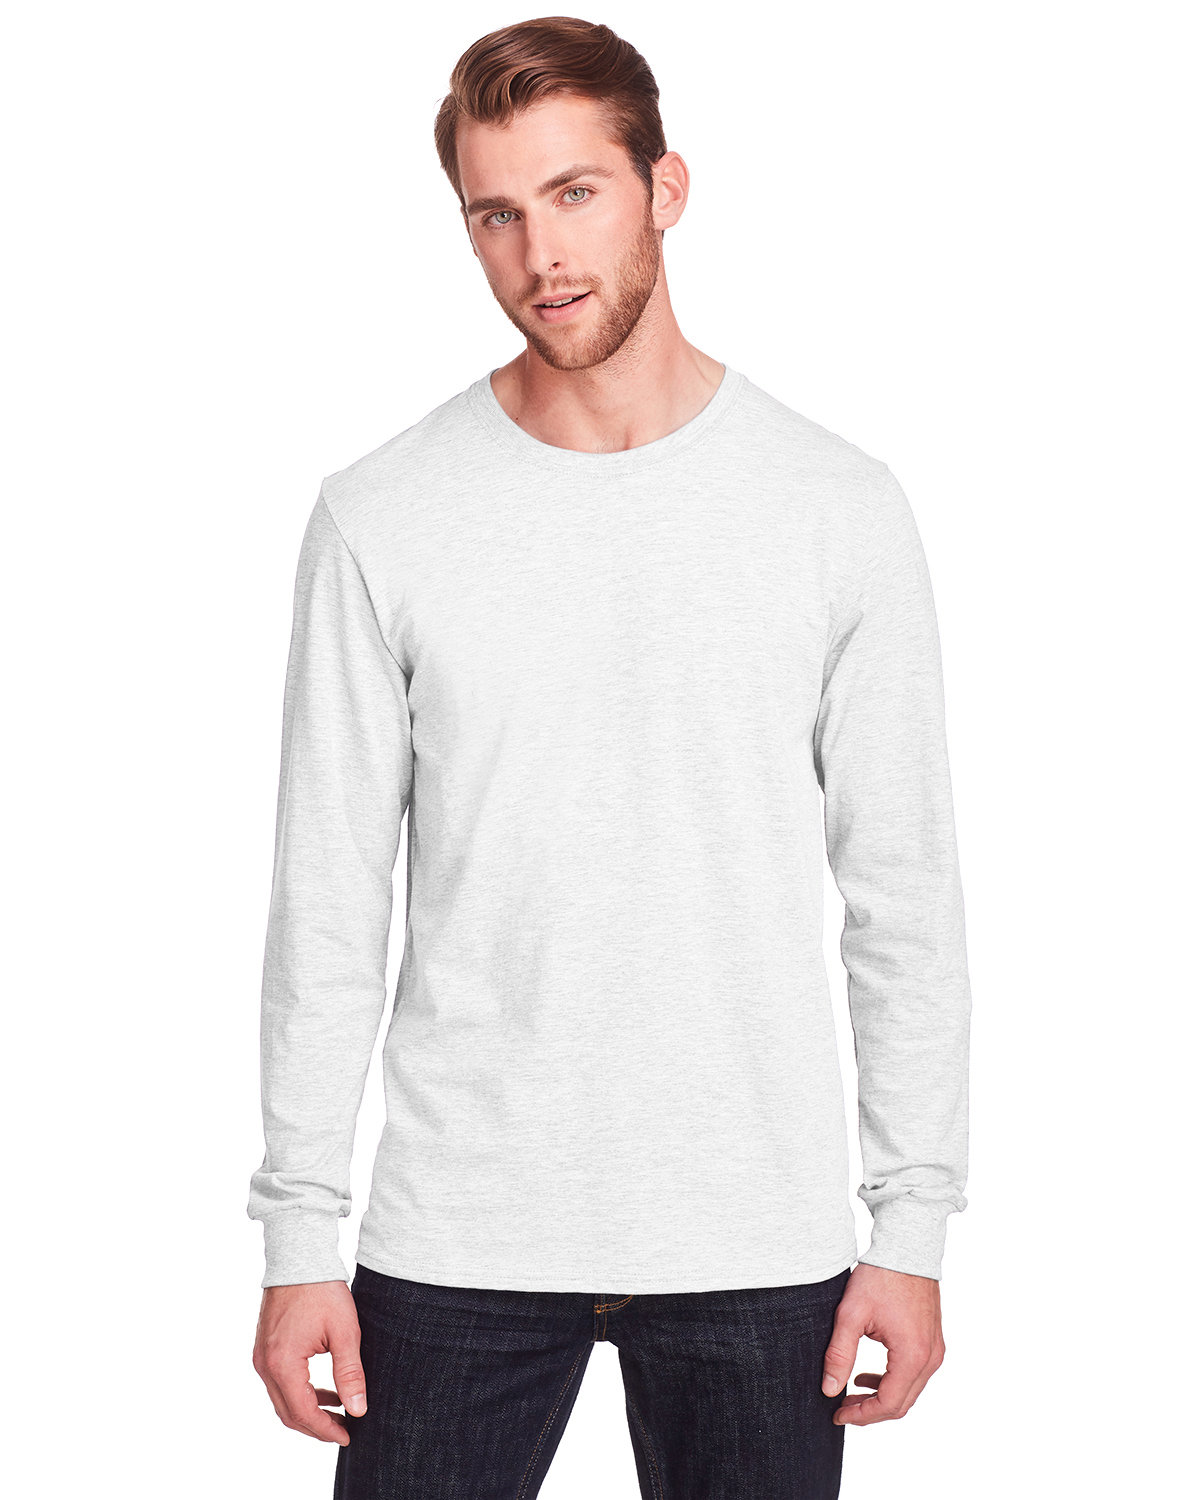 Fruit of the Loom Adult ICONIC™ Long Sleeve T-Shirt WHITE